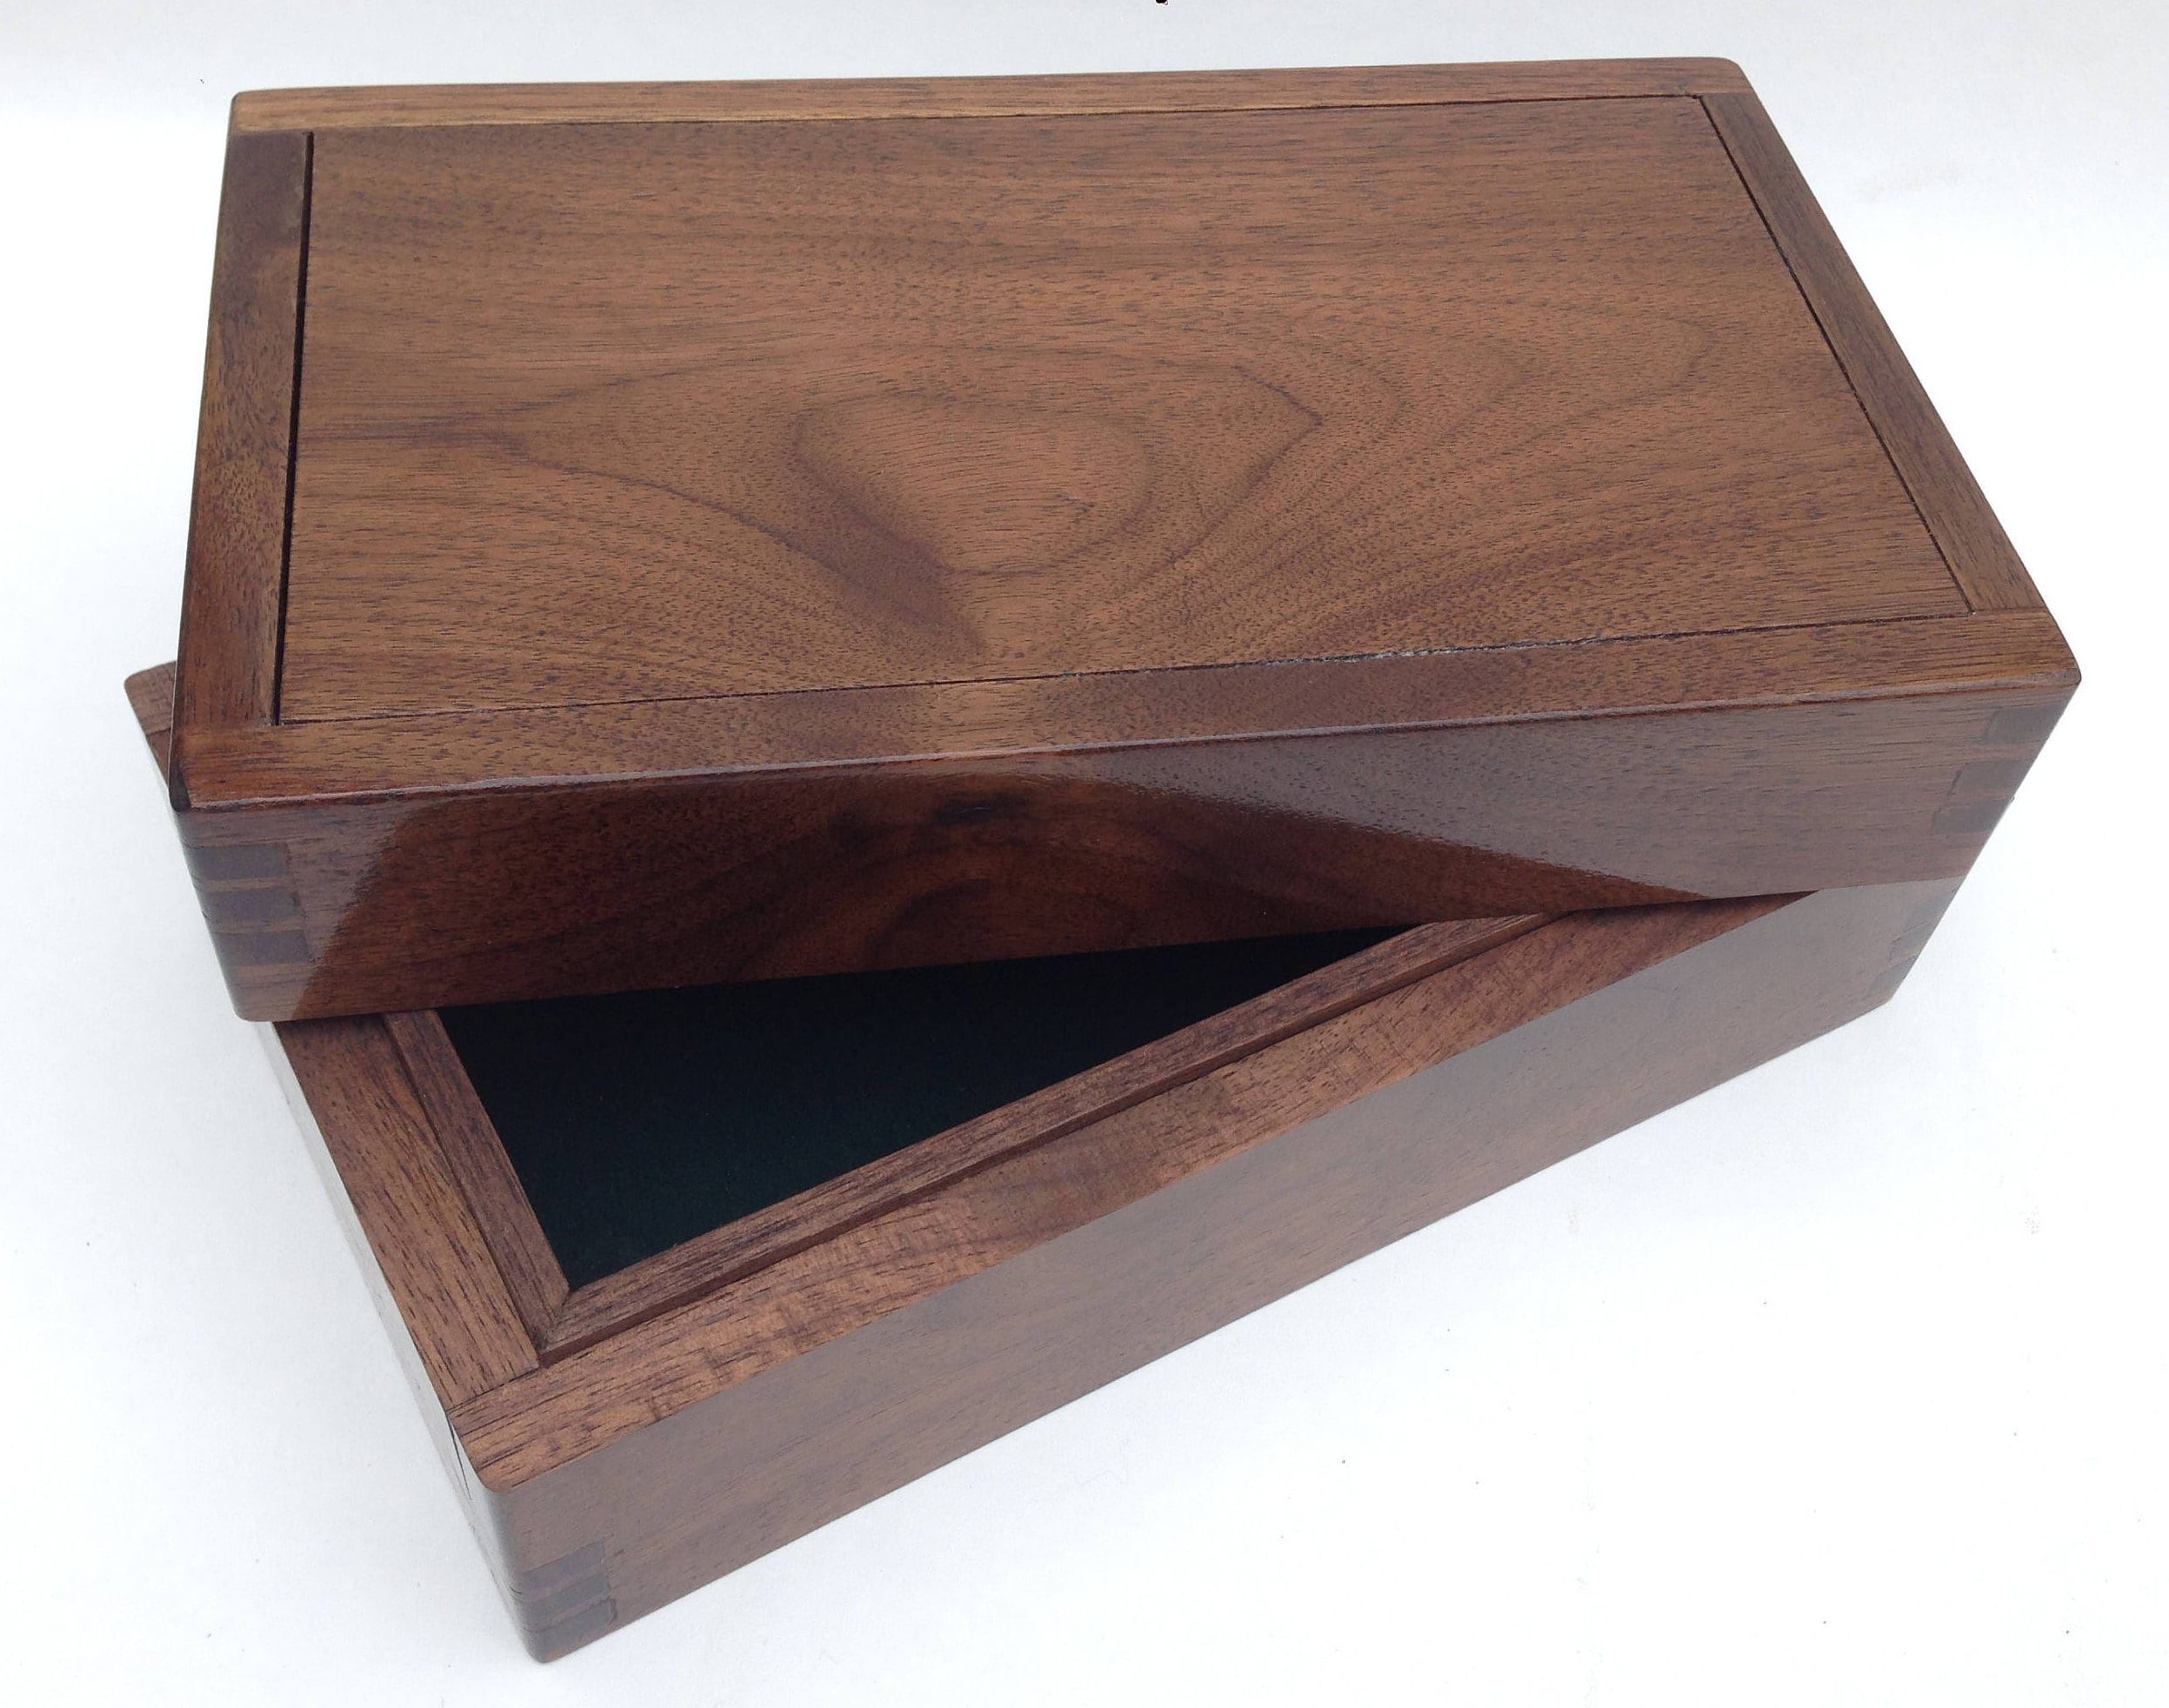 Digby A fine wooden box handmade in walnut to a contemporary. Great midsized jewellery box can be customised in wood and interior.